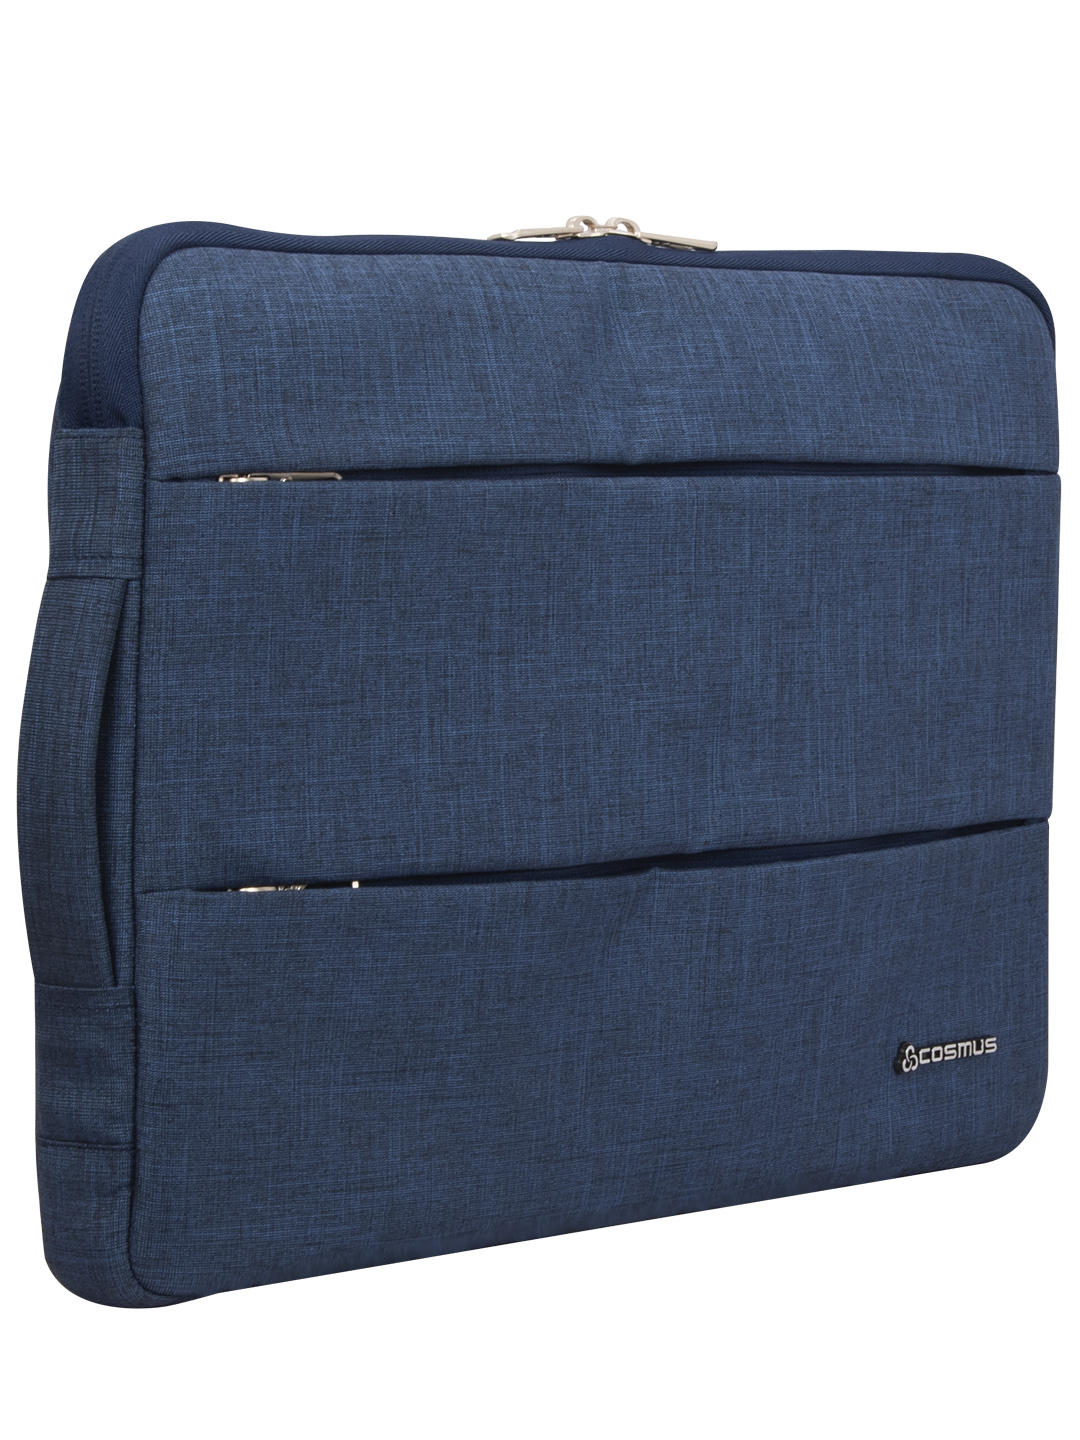 Cosmus Impact Navy Blue Laptop Sleeve up to 15.6 inches